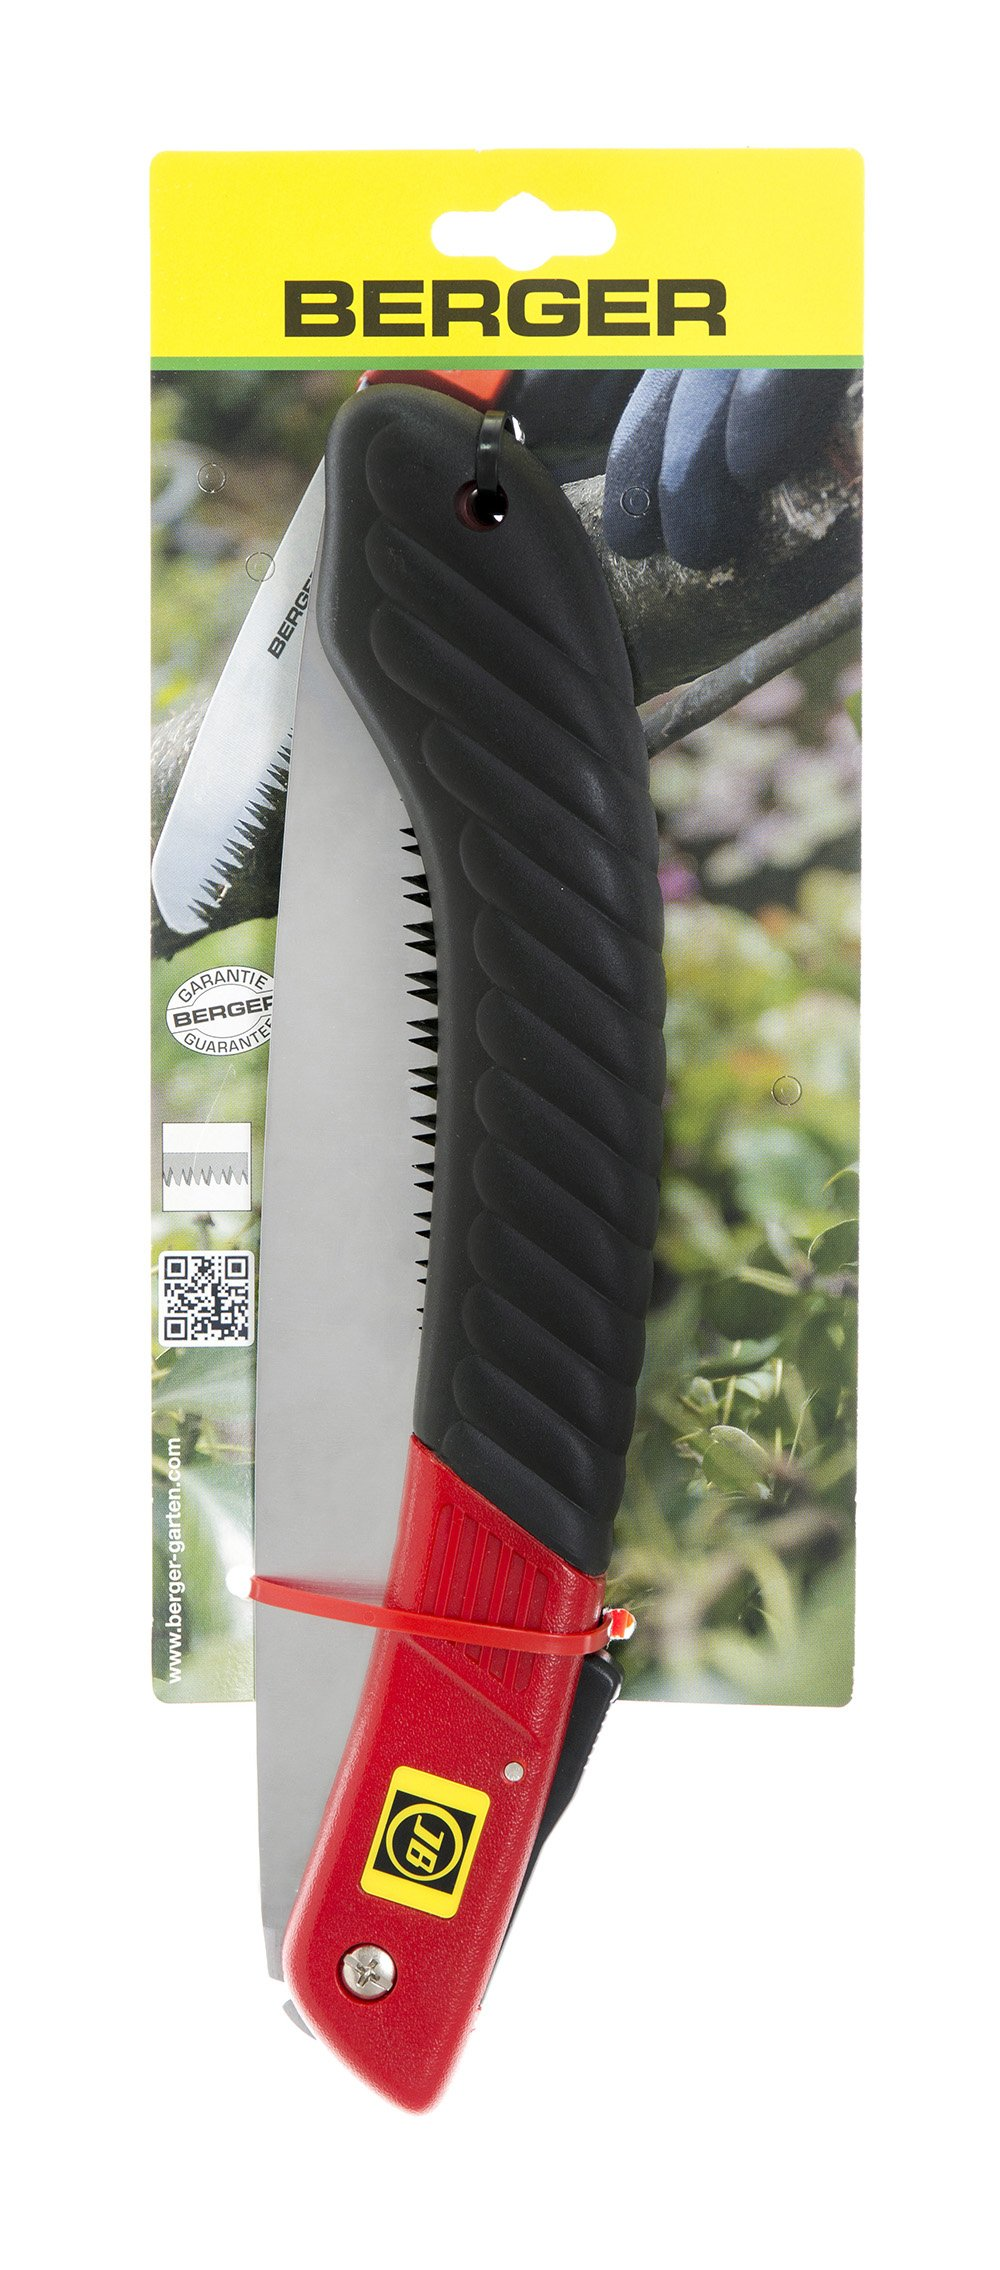 BERGER Tools Folding Saw #64670 by BERGER Tools (Image #5)